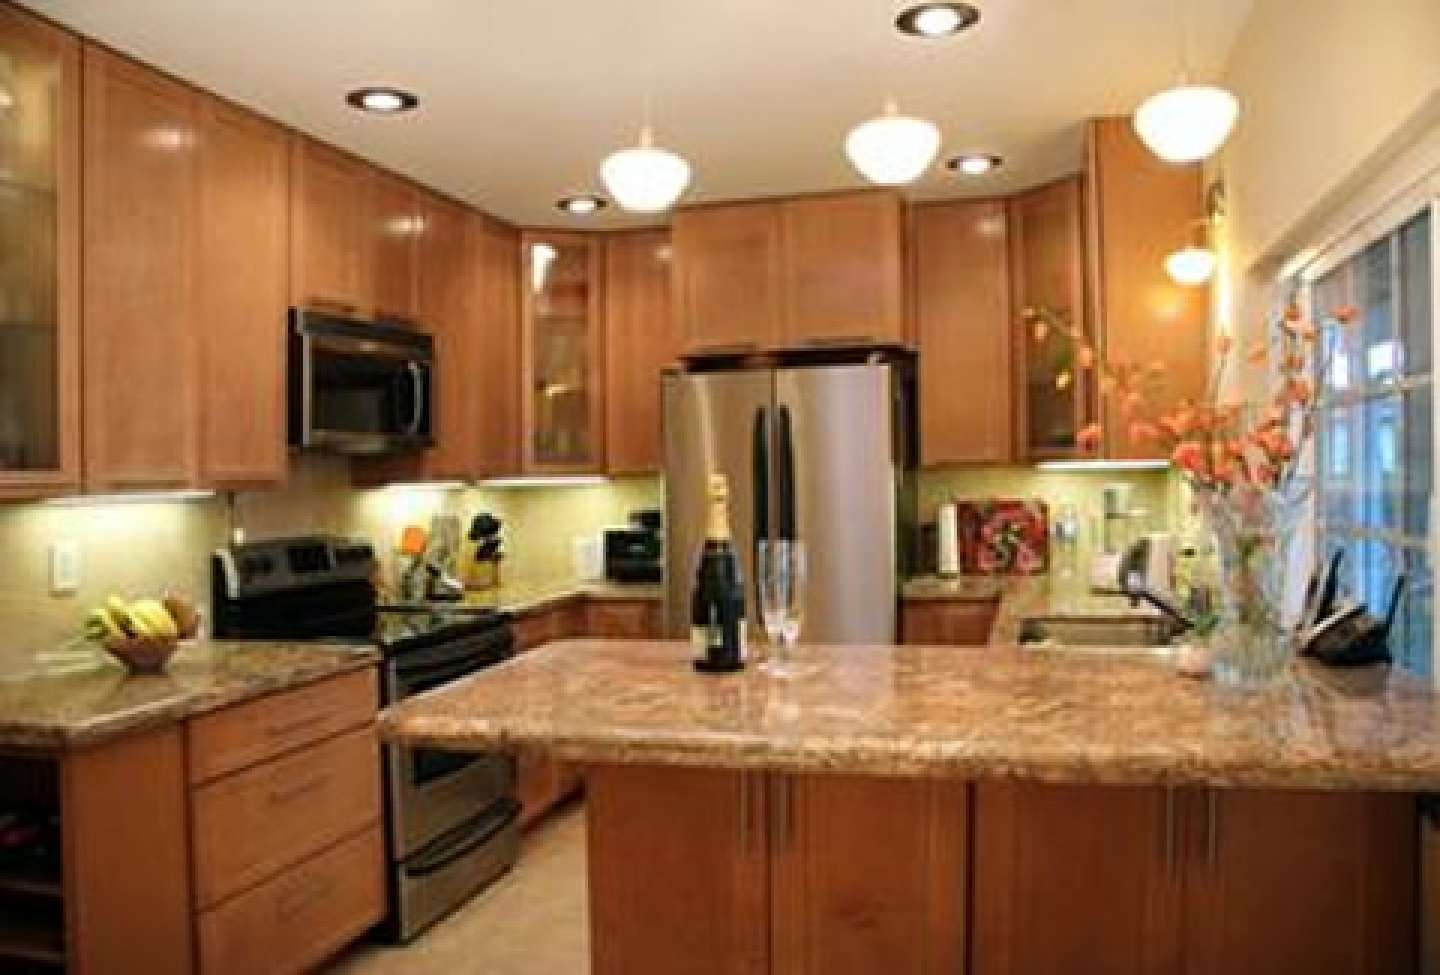 Remodeling Very Small Shaped Kitchen Design Interior